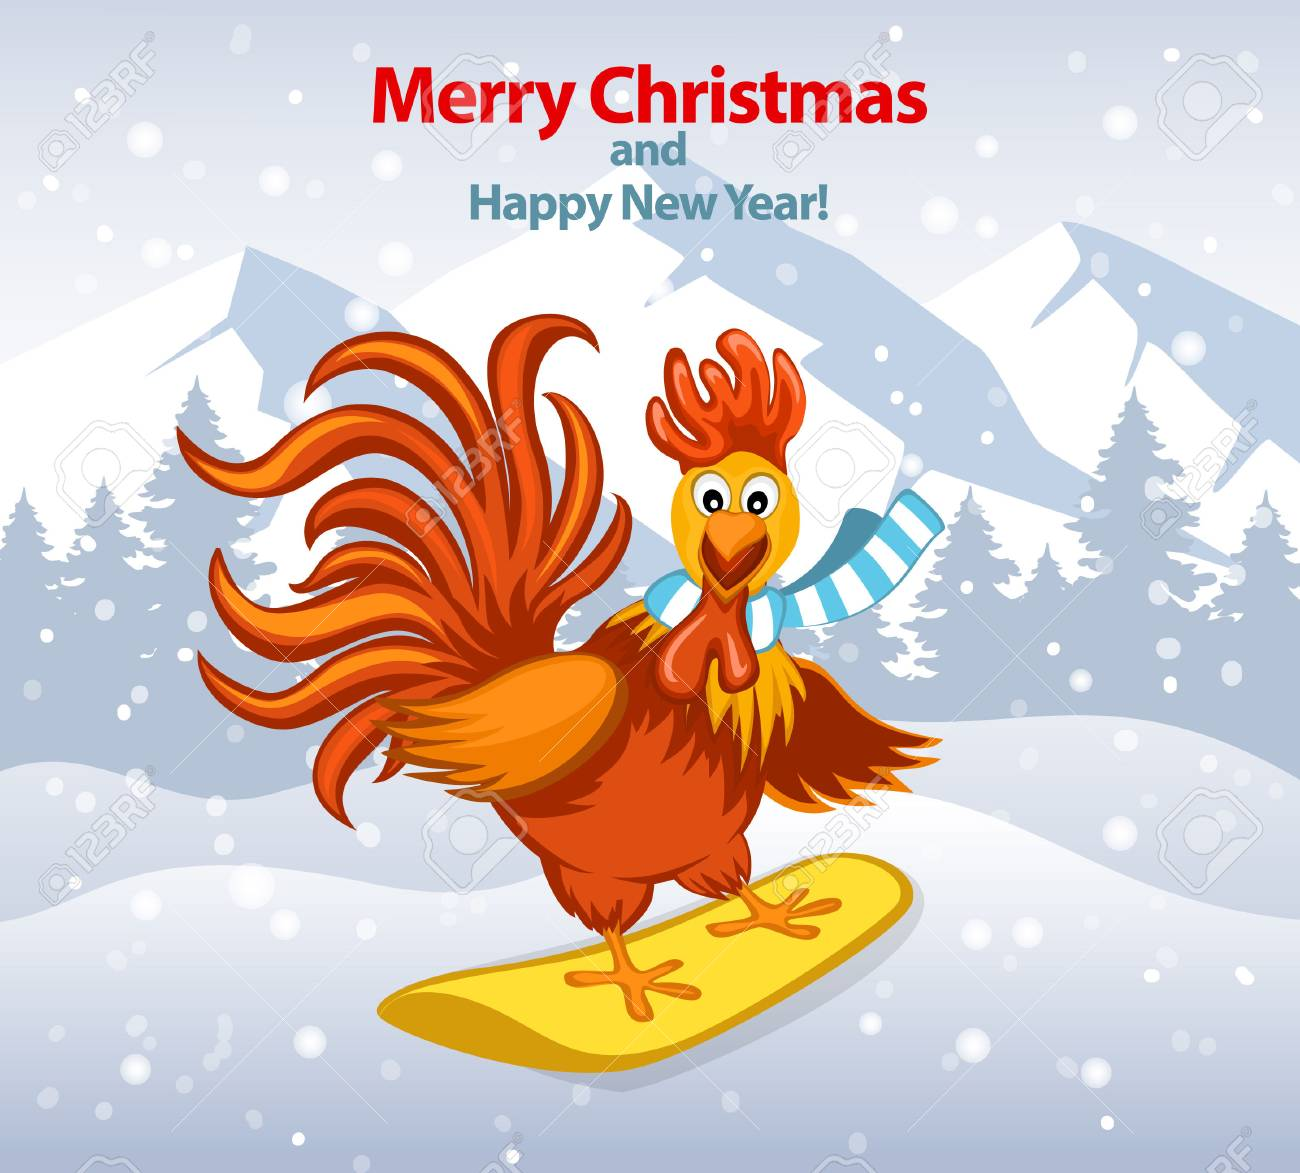 Merry christmas and happy new year greeting card with cute funny merry christmas and happy new year greeting card with cute funny rooster on snowboard vector illustration m4hsunfo